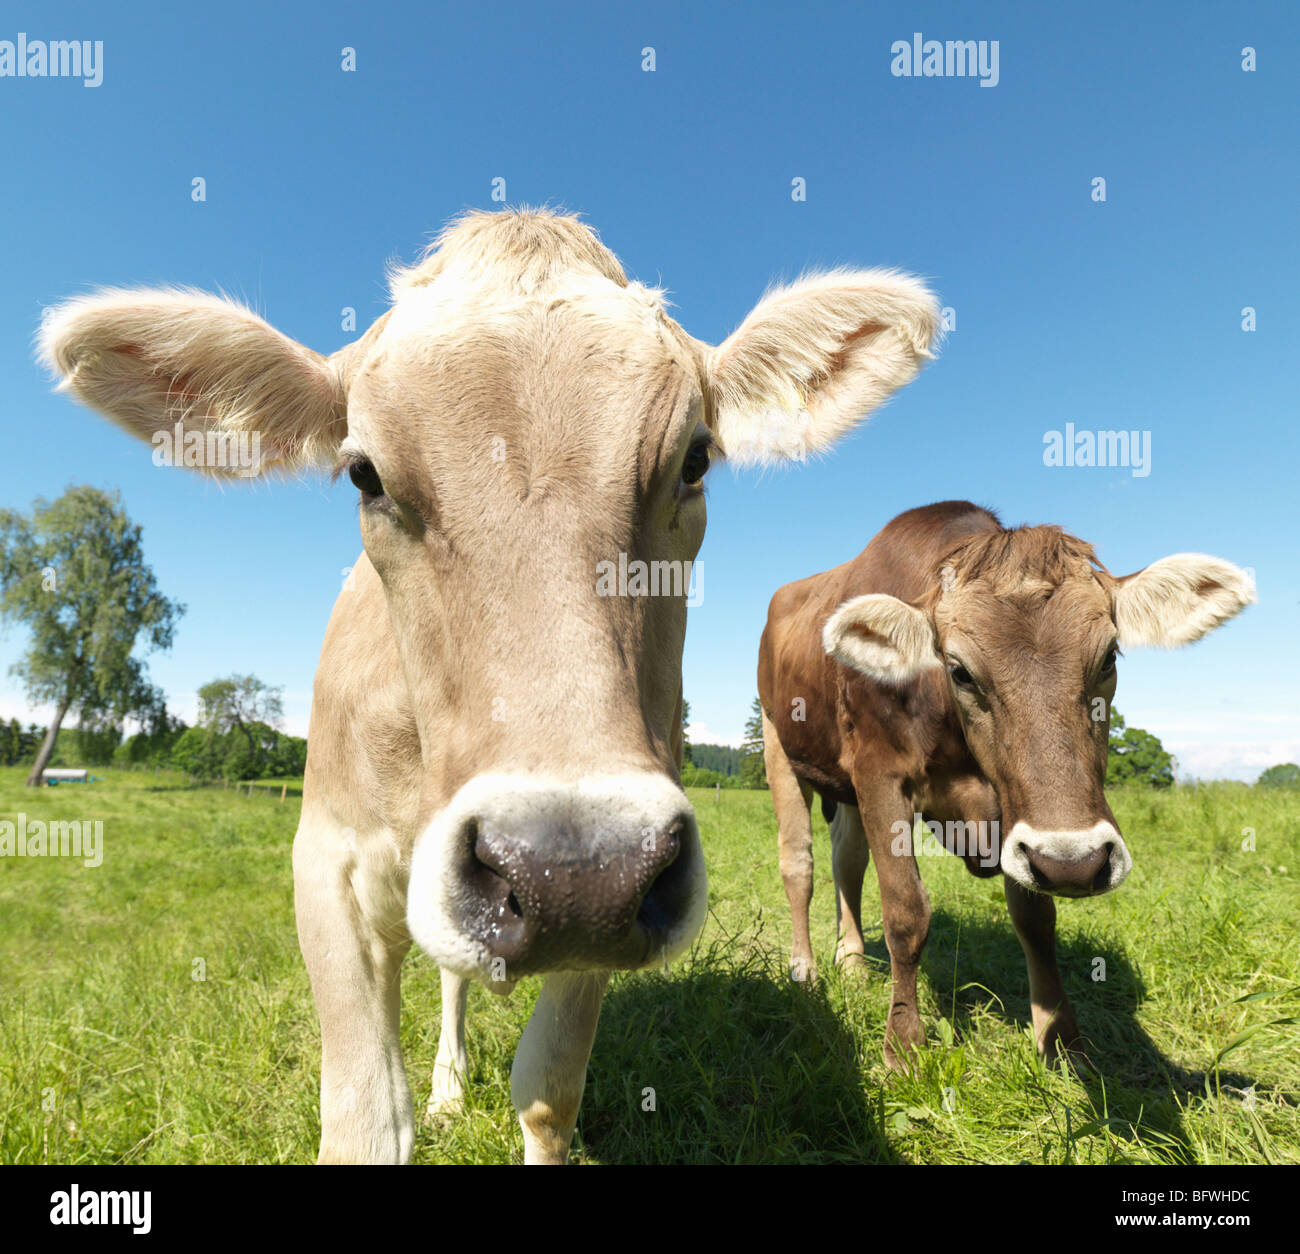 Cows in field - Stock Image